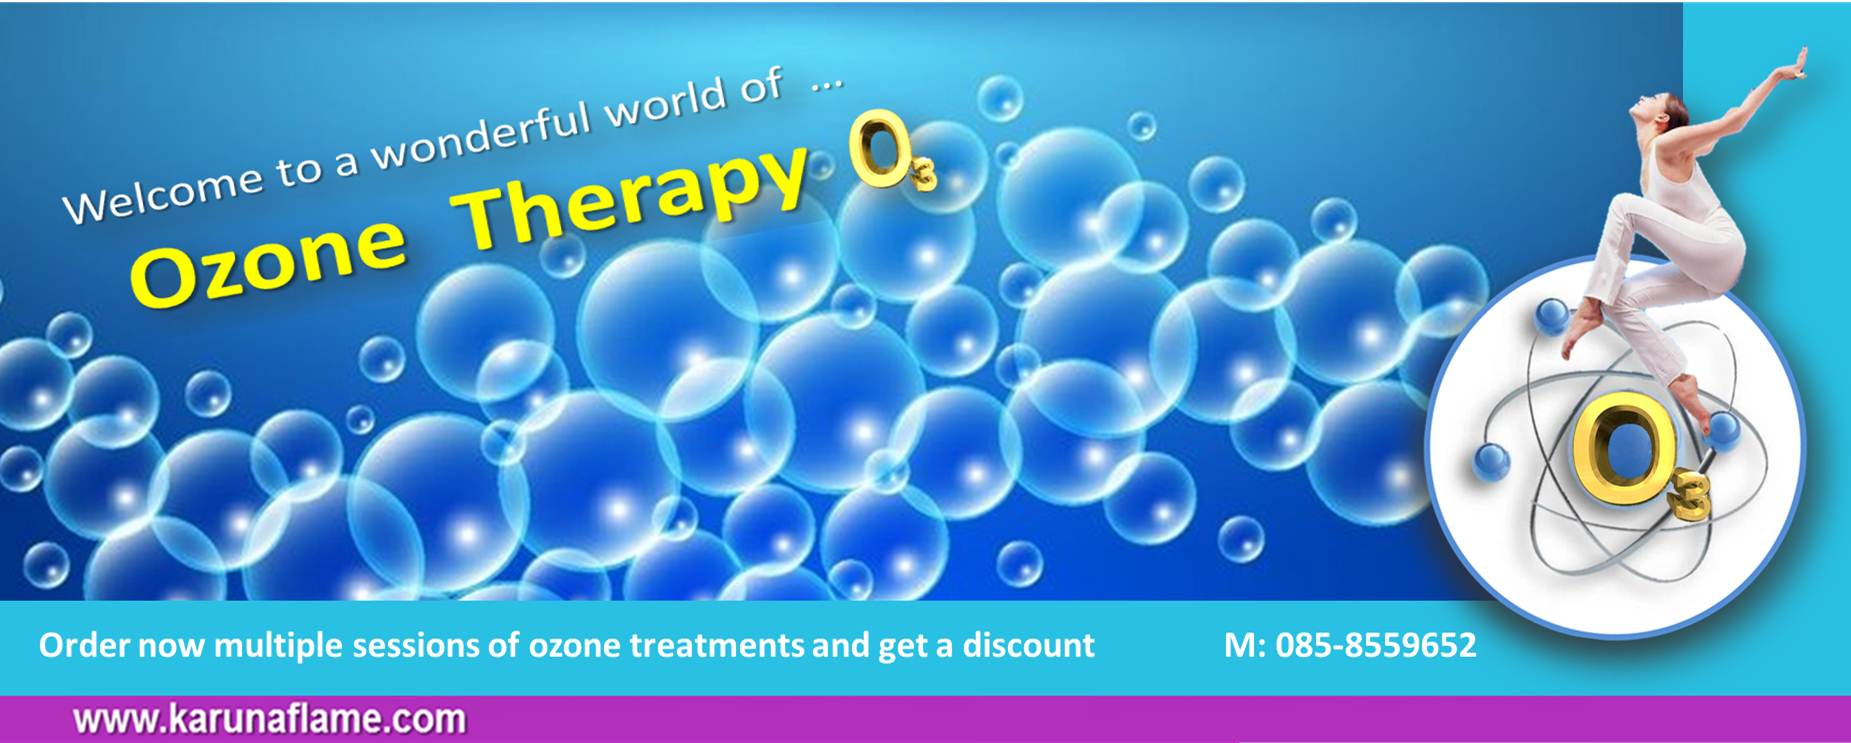 ozone therapy research papers Ozone article - download as  oxygen/ozone therapy has a long history of research  ozone therapy into your practice ist and published numerous papers on the.